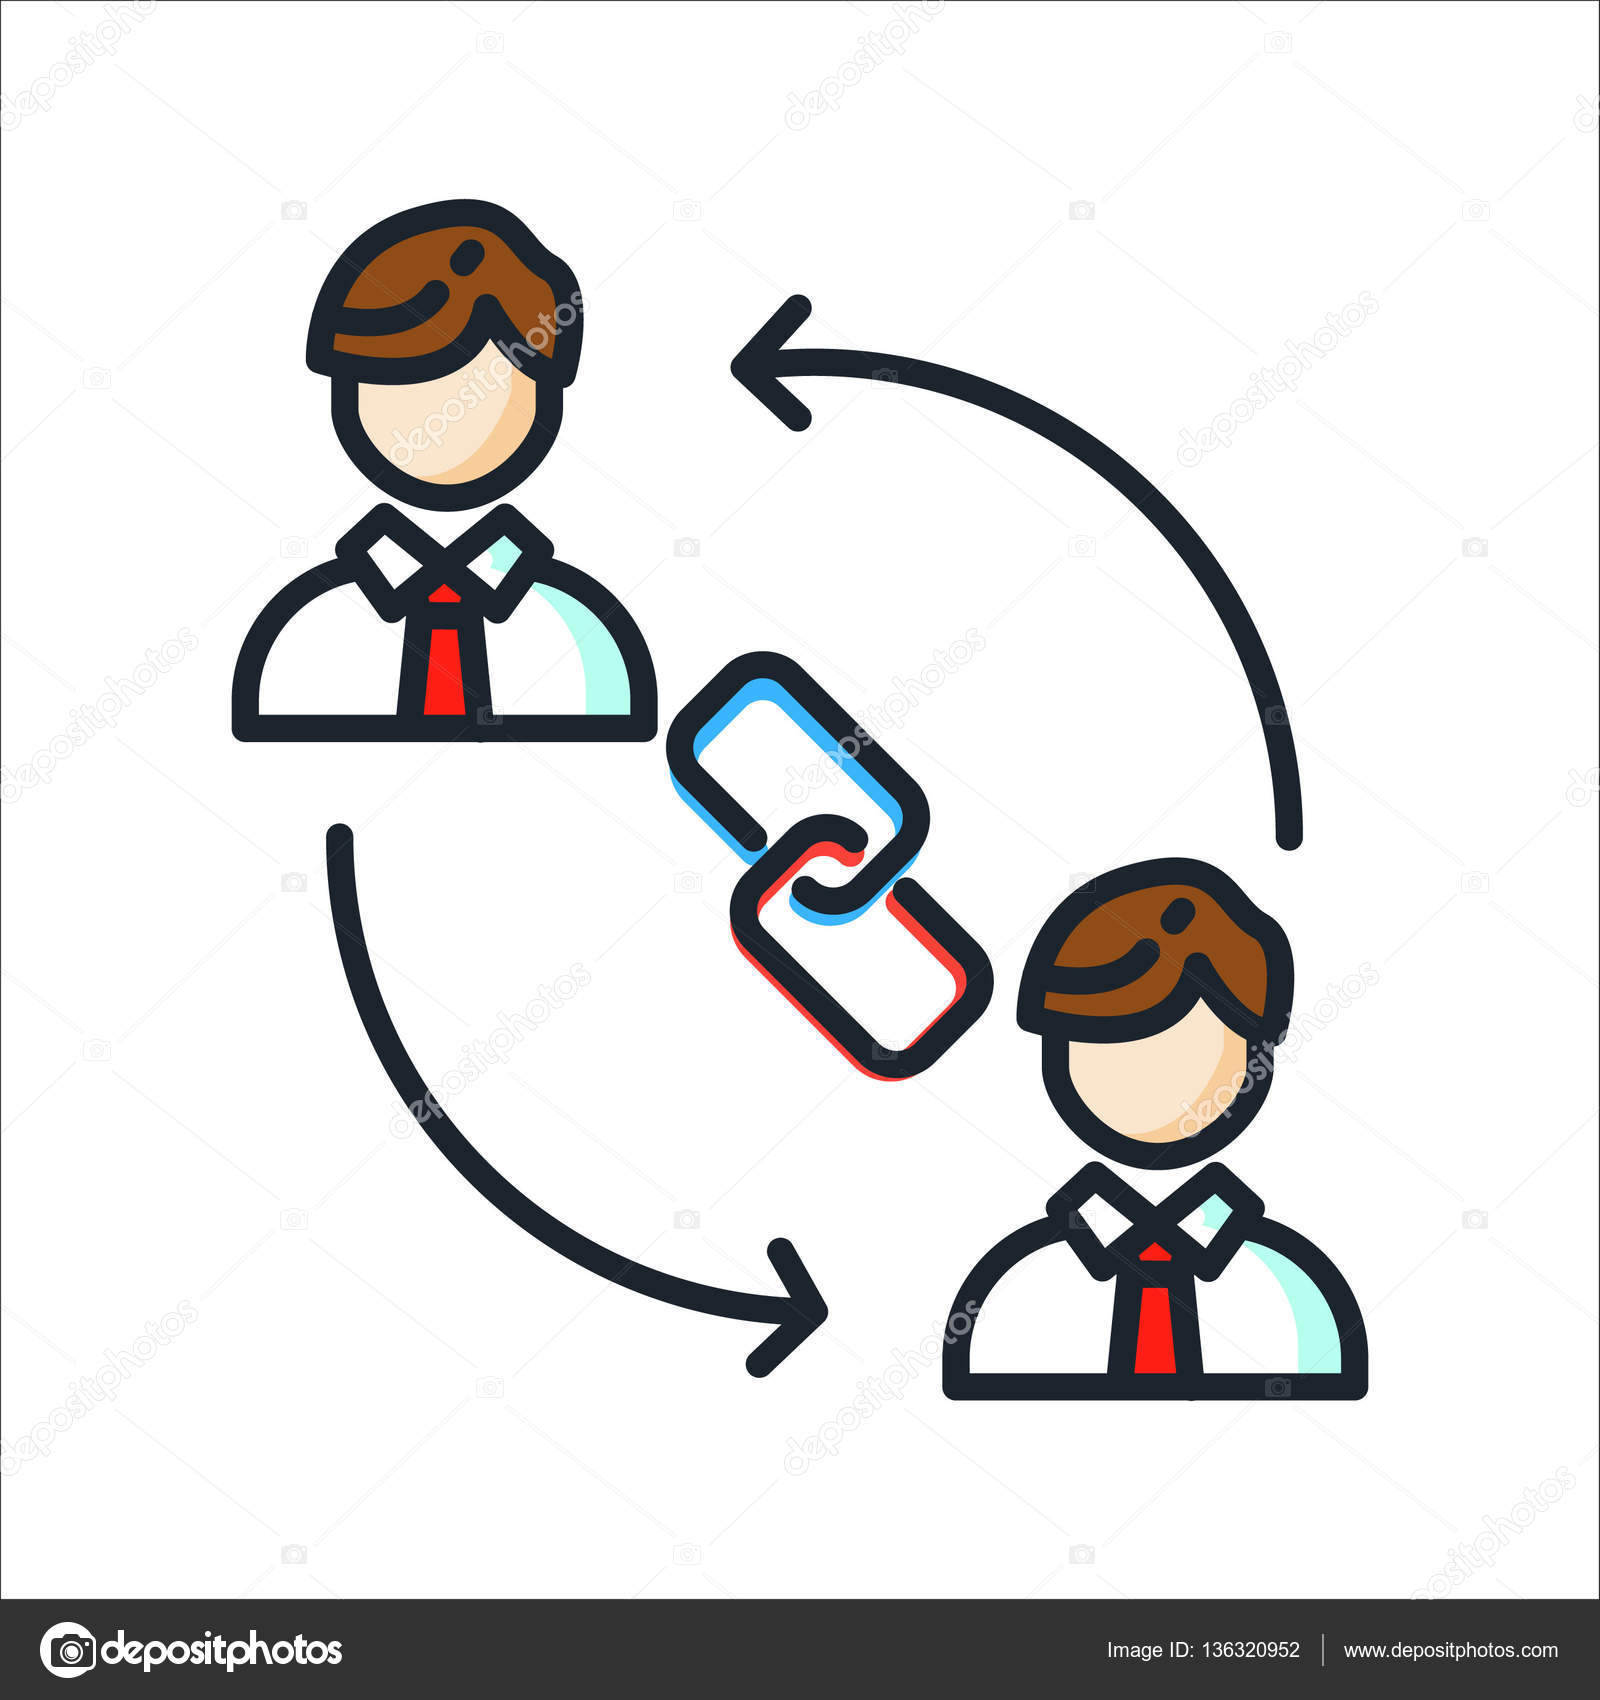 personal connection icon vector mieux snapchat entreprendre avec indomercy2012 depositphotos